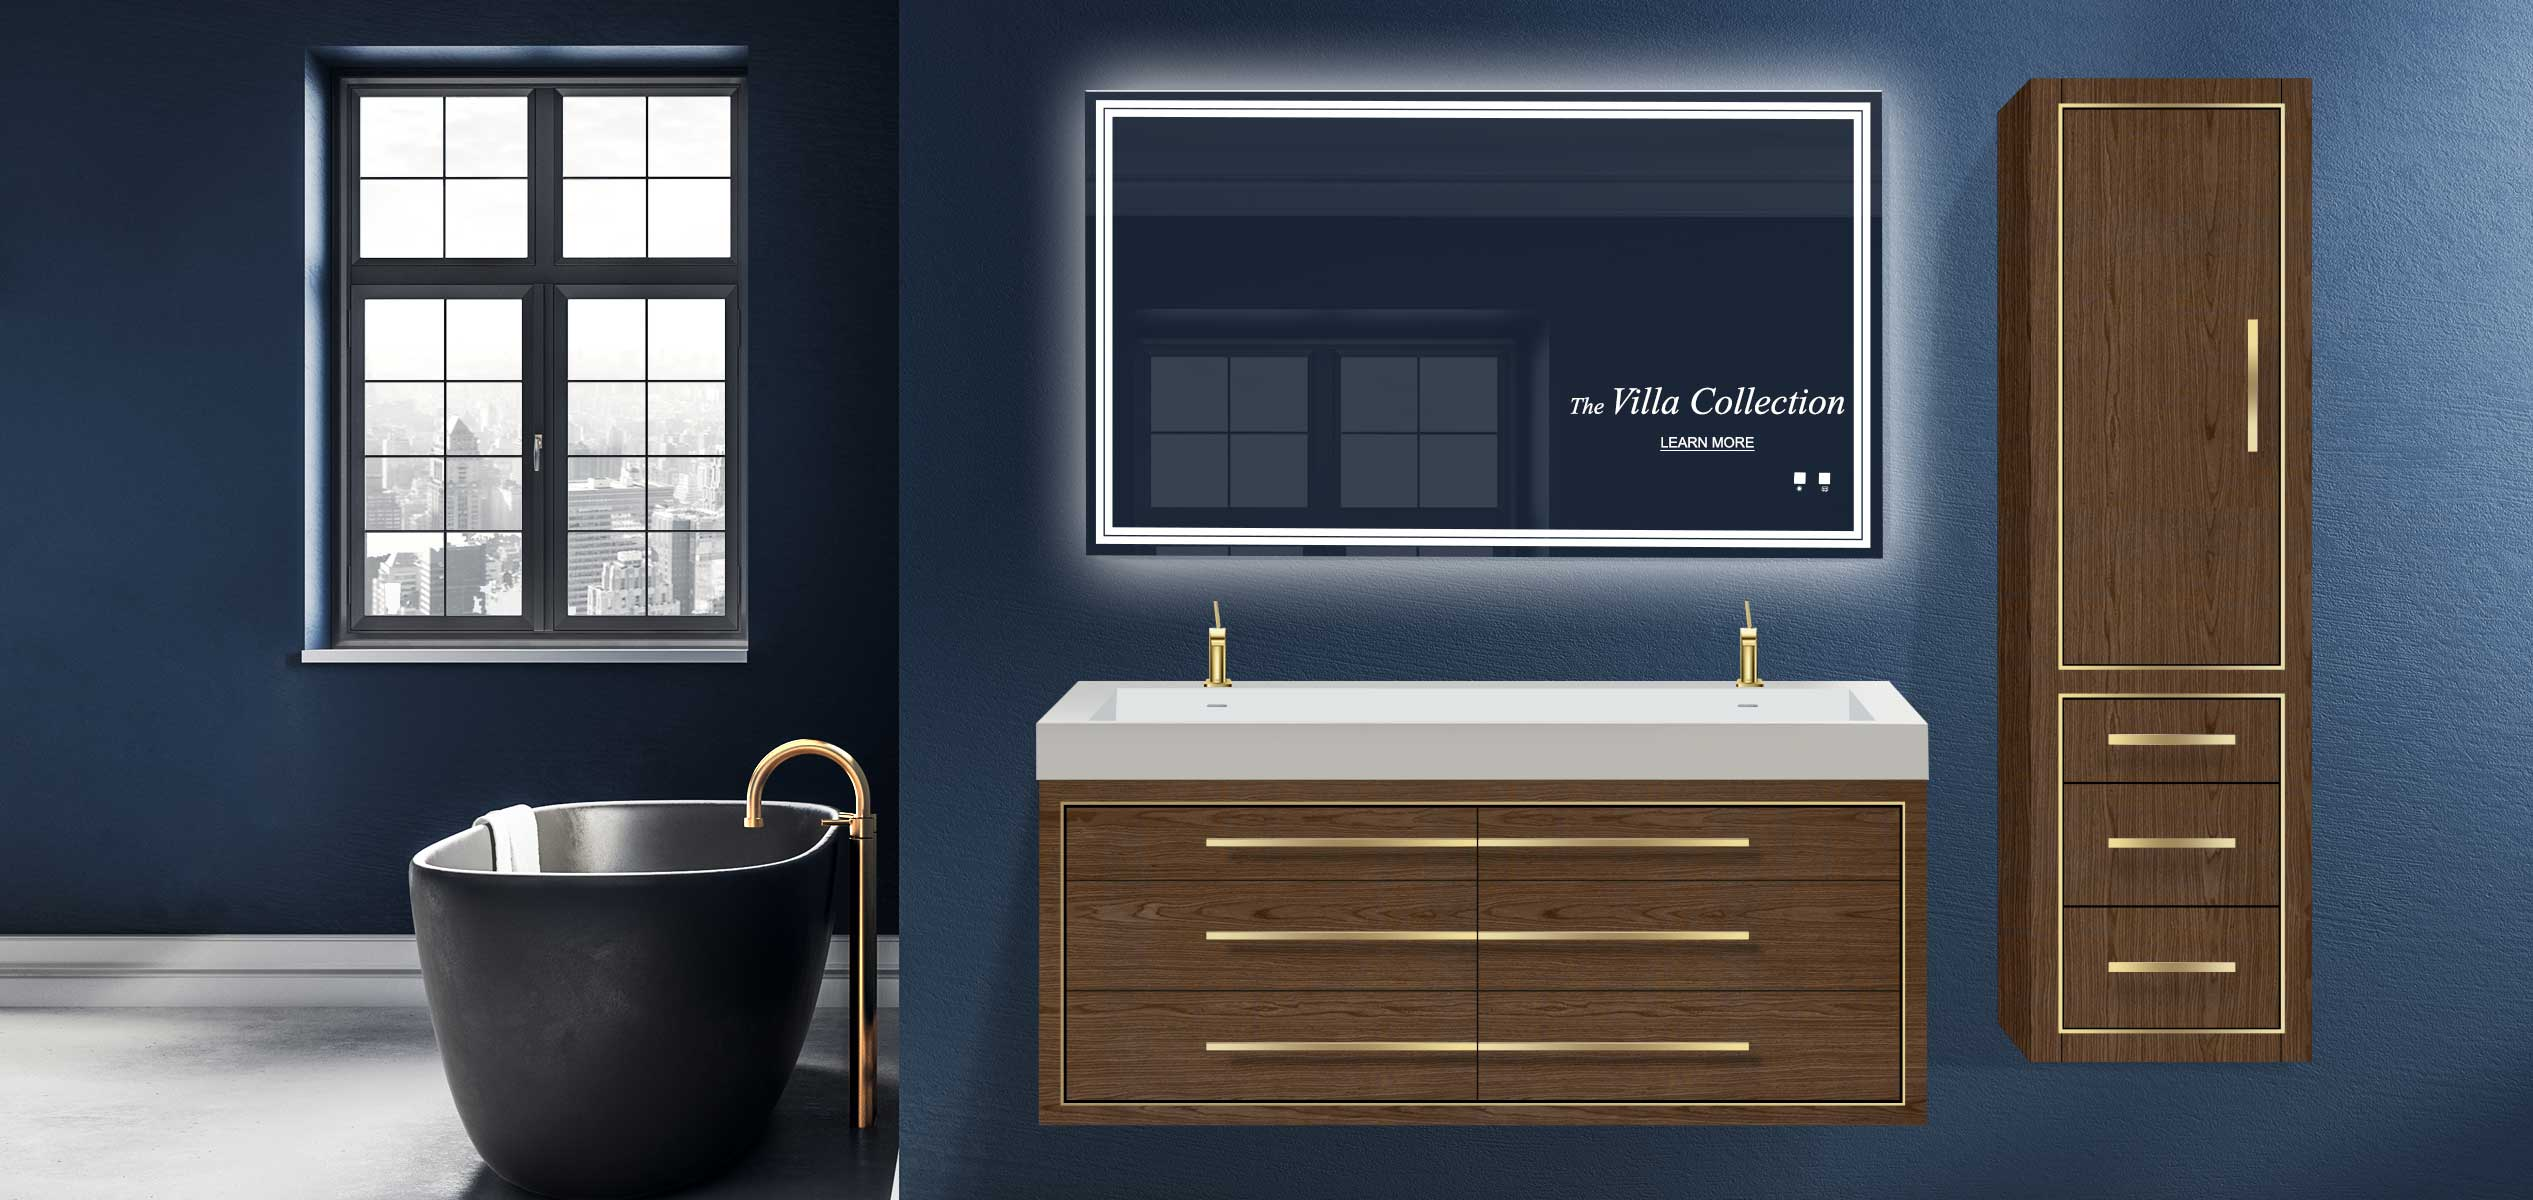 Villa 60 inch double bowl vanity and linen cabinet in walnut finish and slique lighted mirror